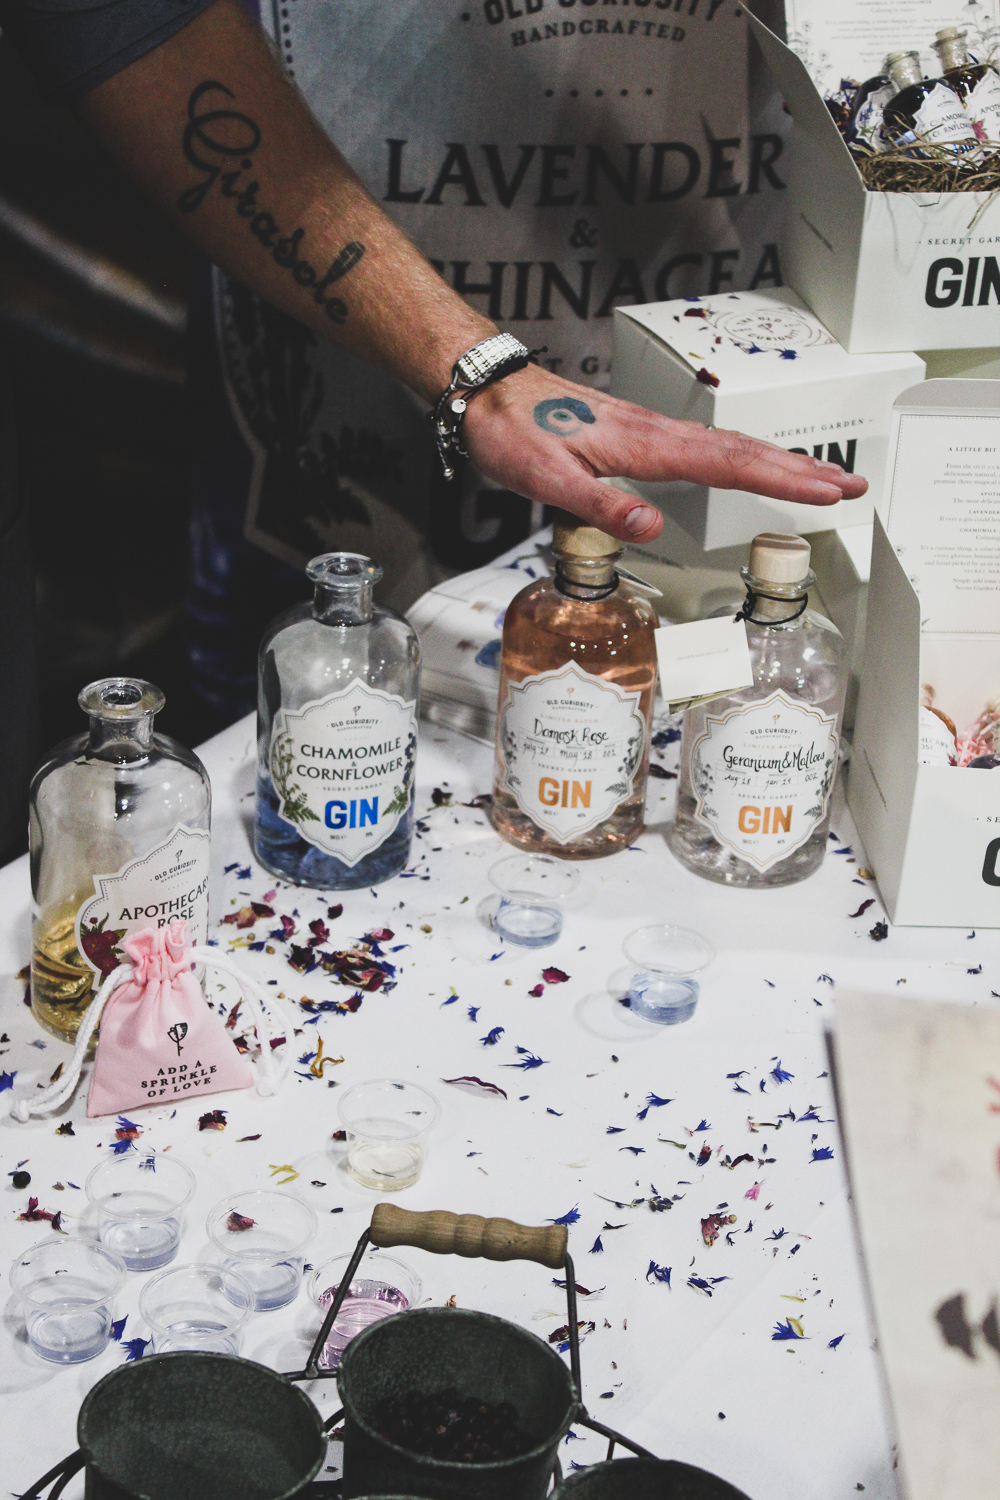 The Old Curiosity Distillery . Hand-grown; picked and infused botanicals turned into amazing gins.